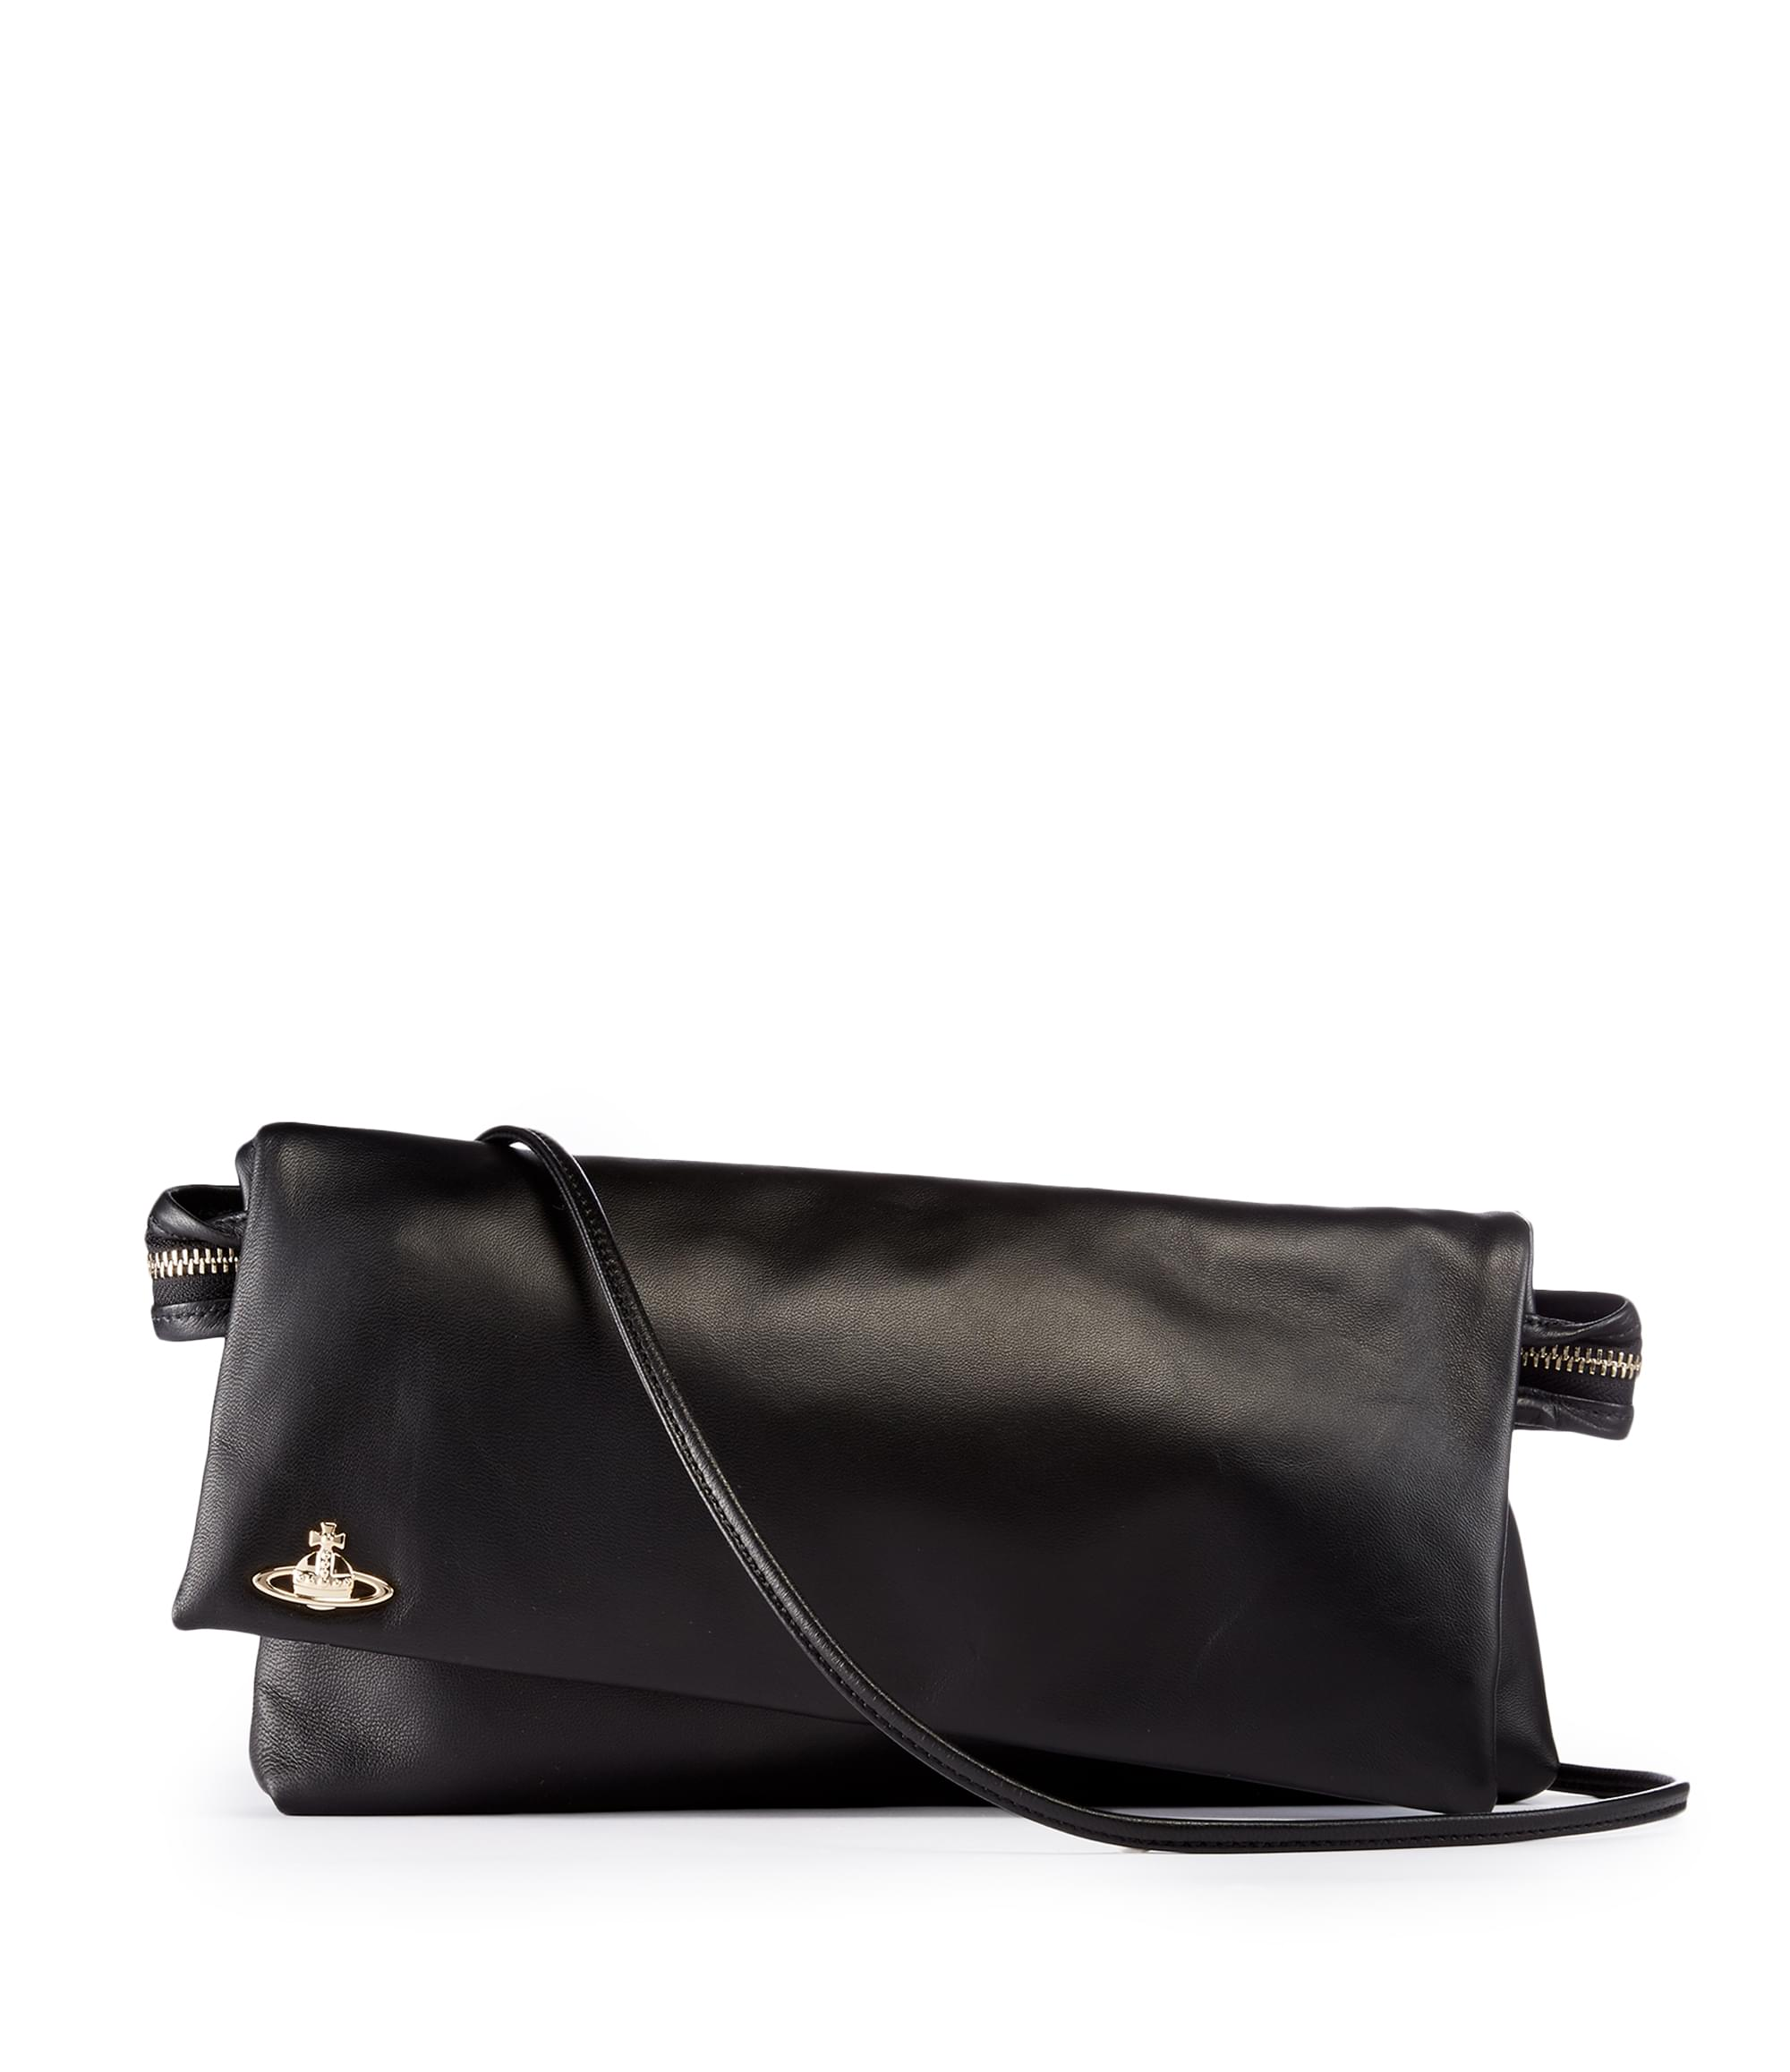 Vivienne Westwood Leather Tintwistle Clutch Bag 44020005 Black